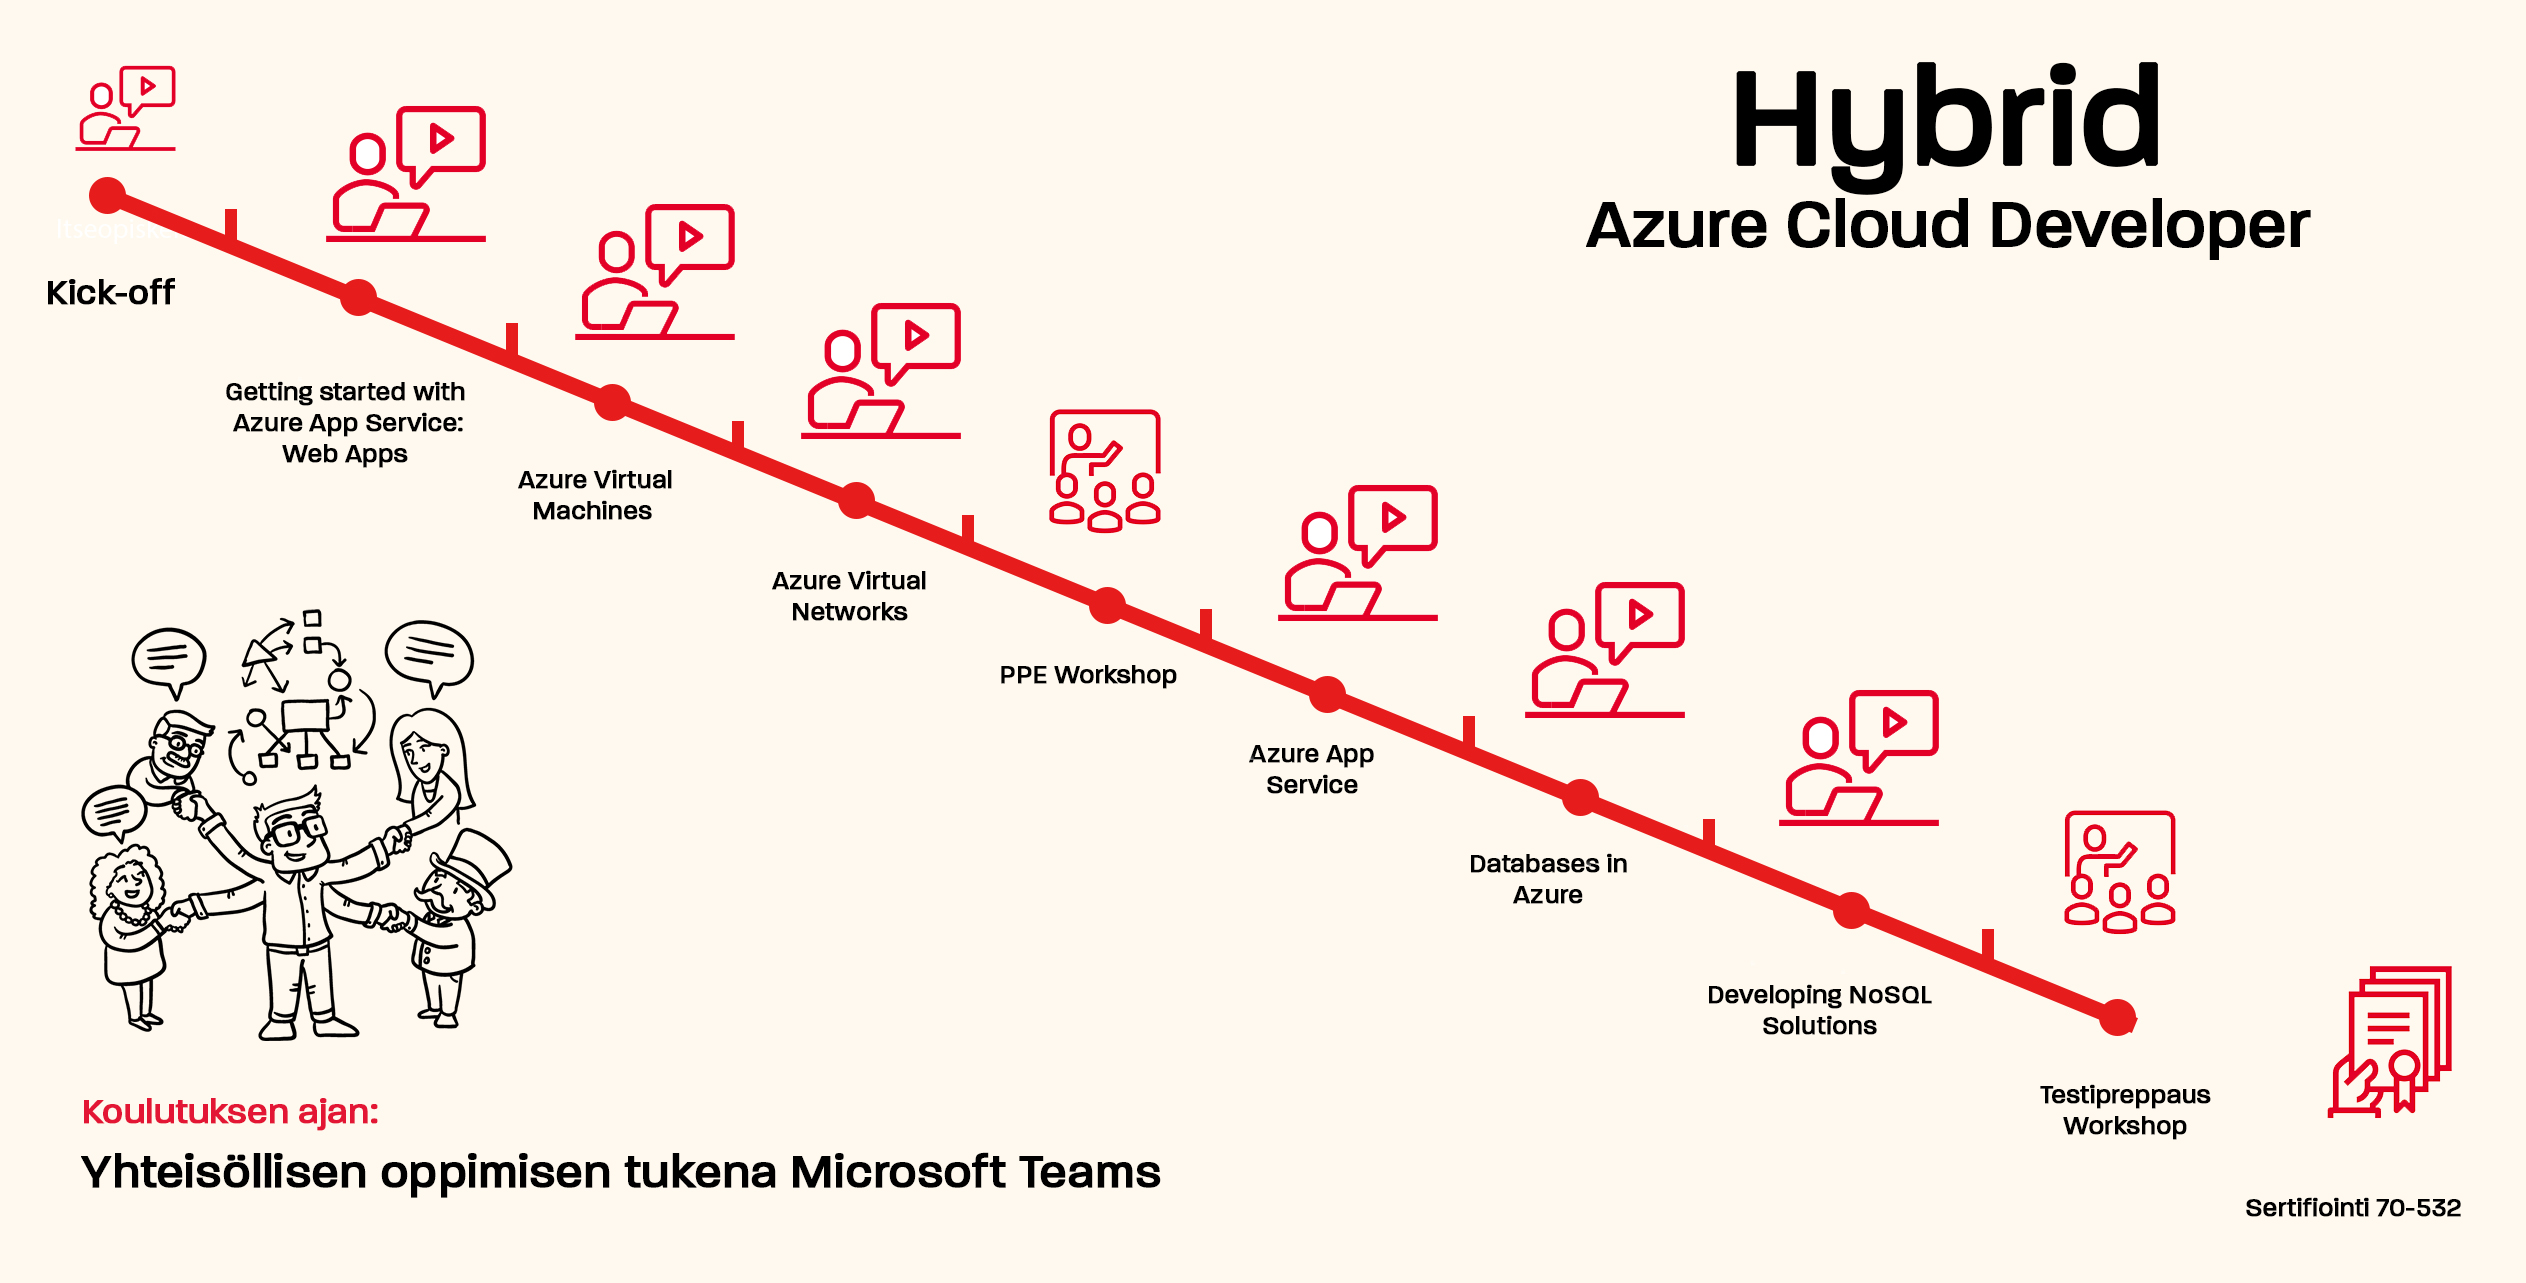 hybrid azure developer